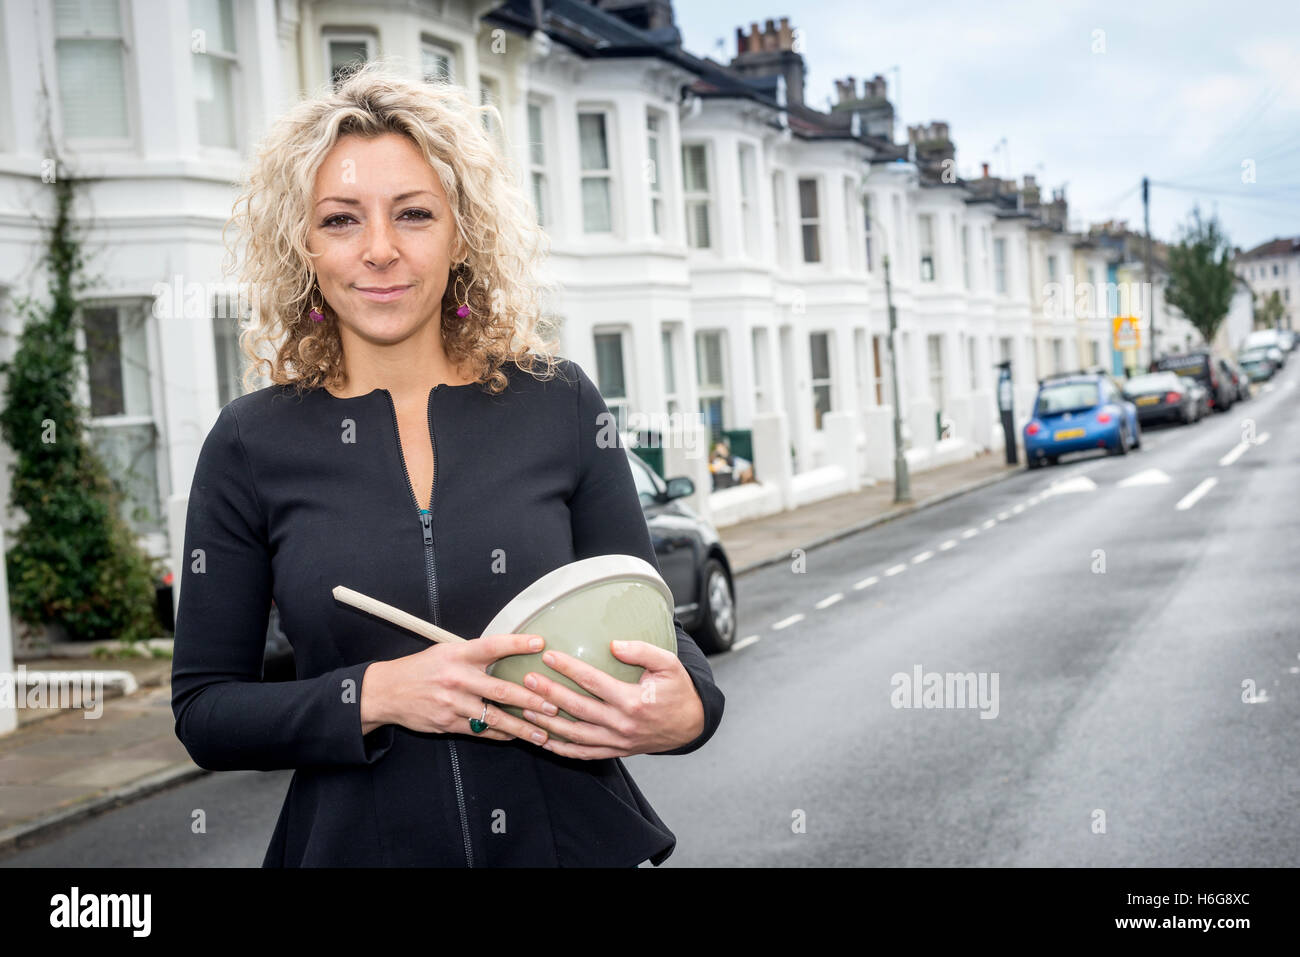 One-time Great British Bake-Off contestant Kate Henry at home in Brighton - Stock Image